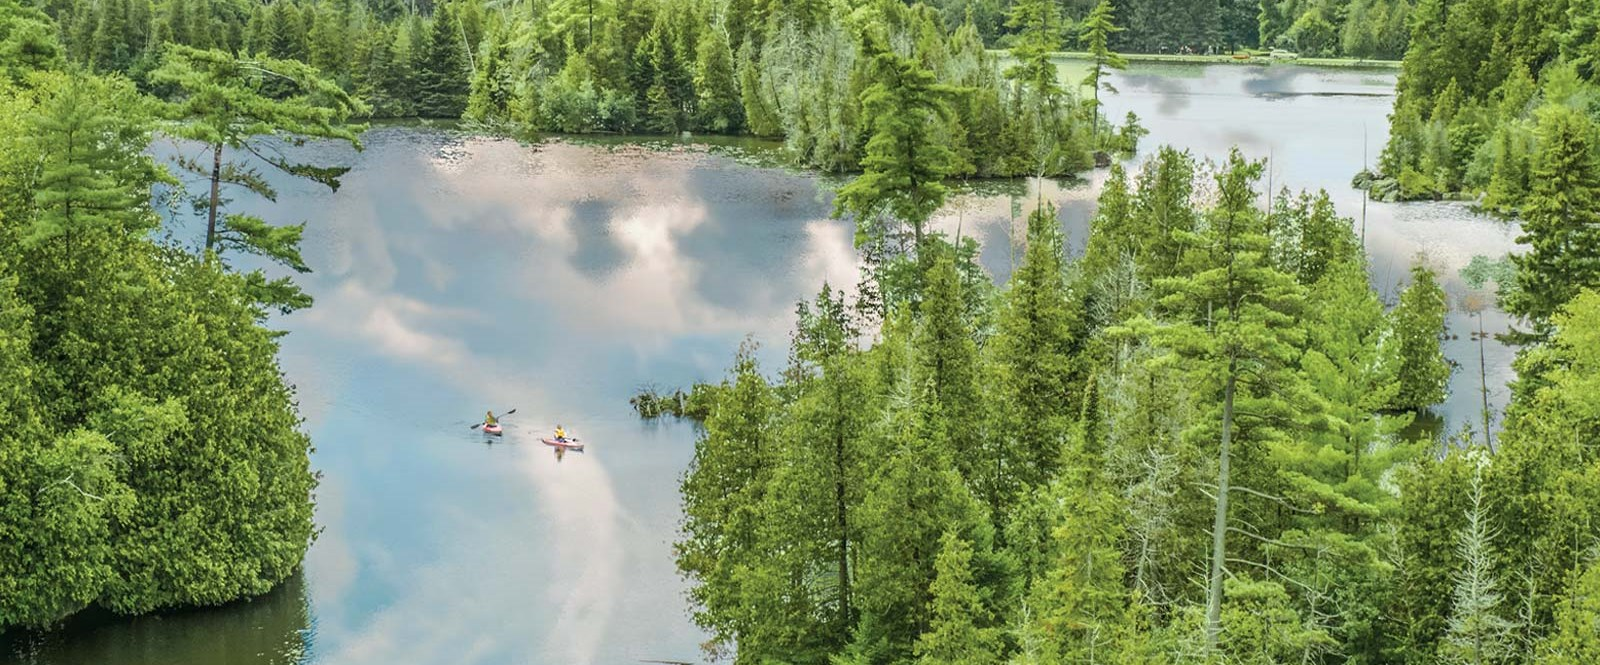 ariel shot of two canoes in lake surrounded by forest